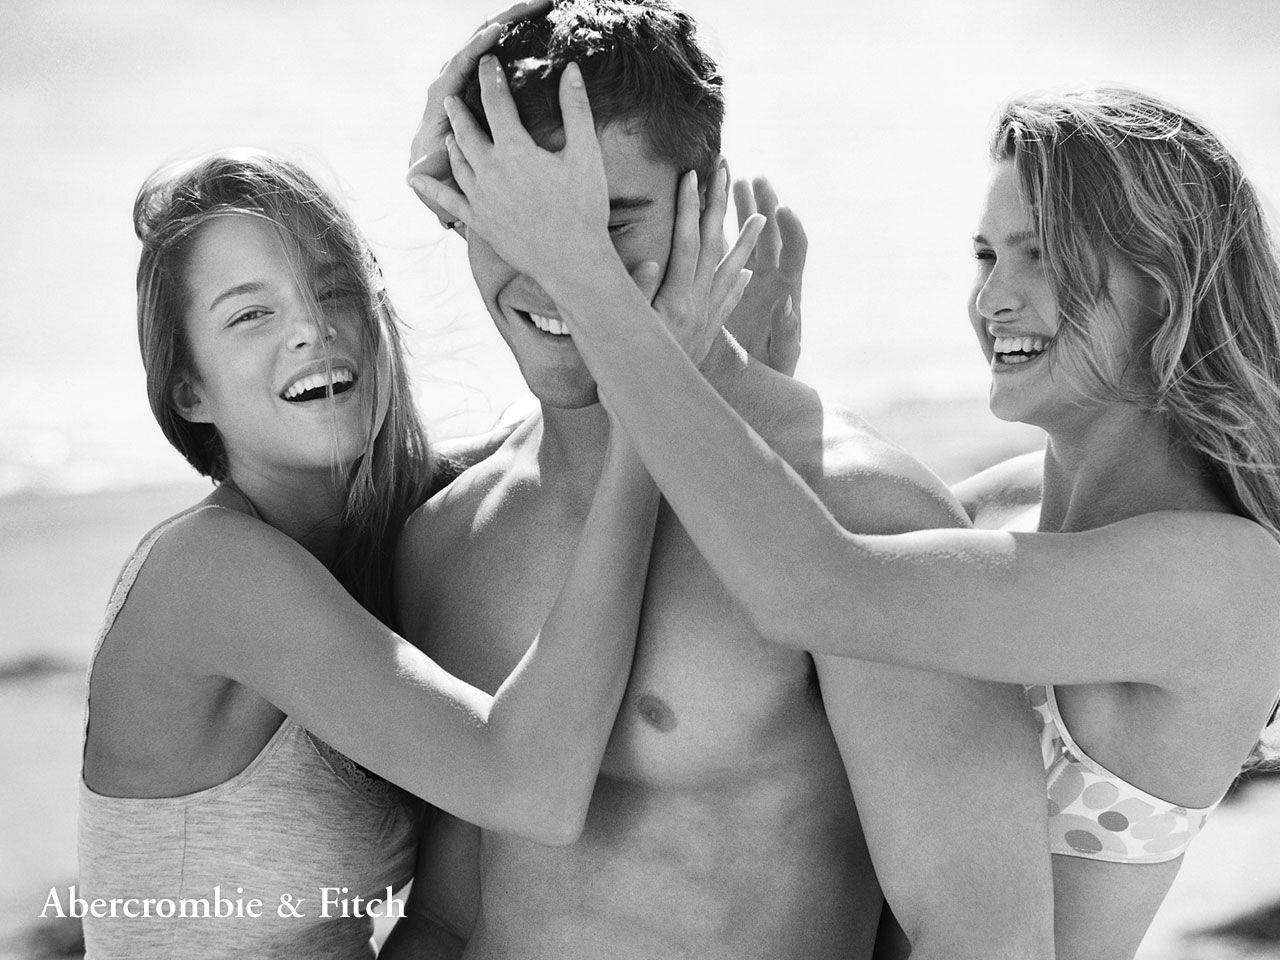 17 Best images about Abercrombie & Fitch Models on Pinterest ...